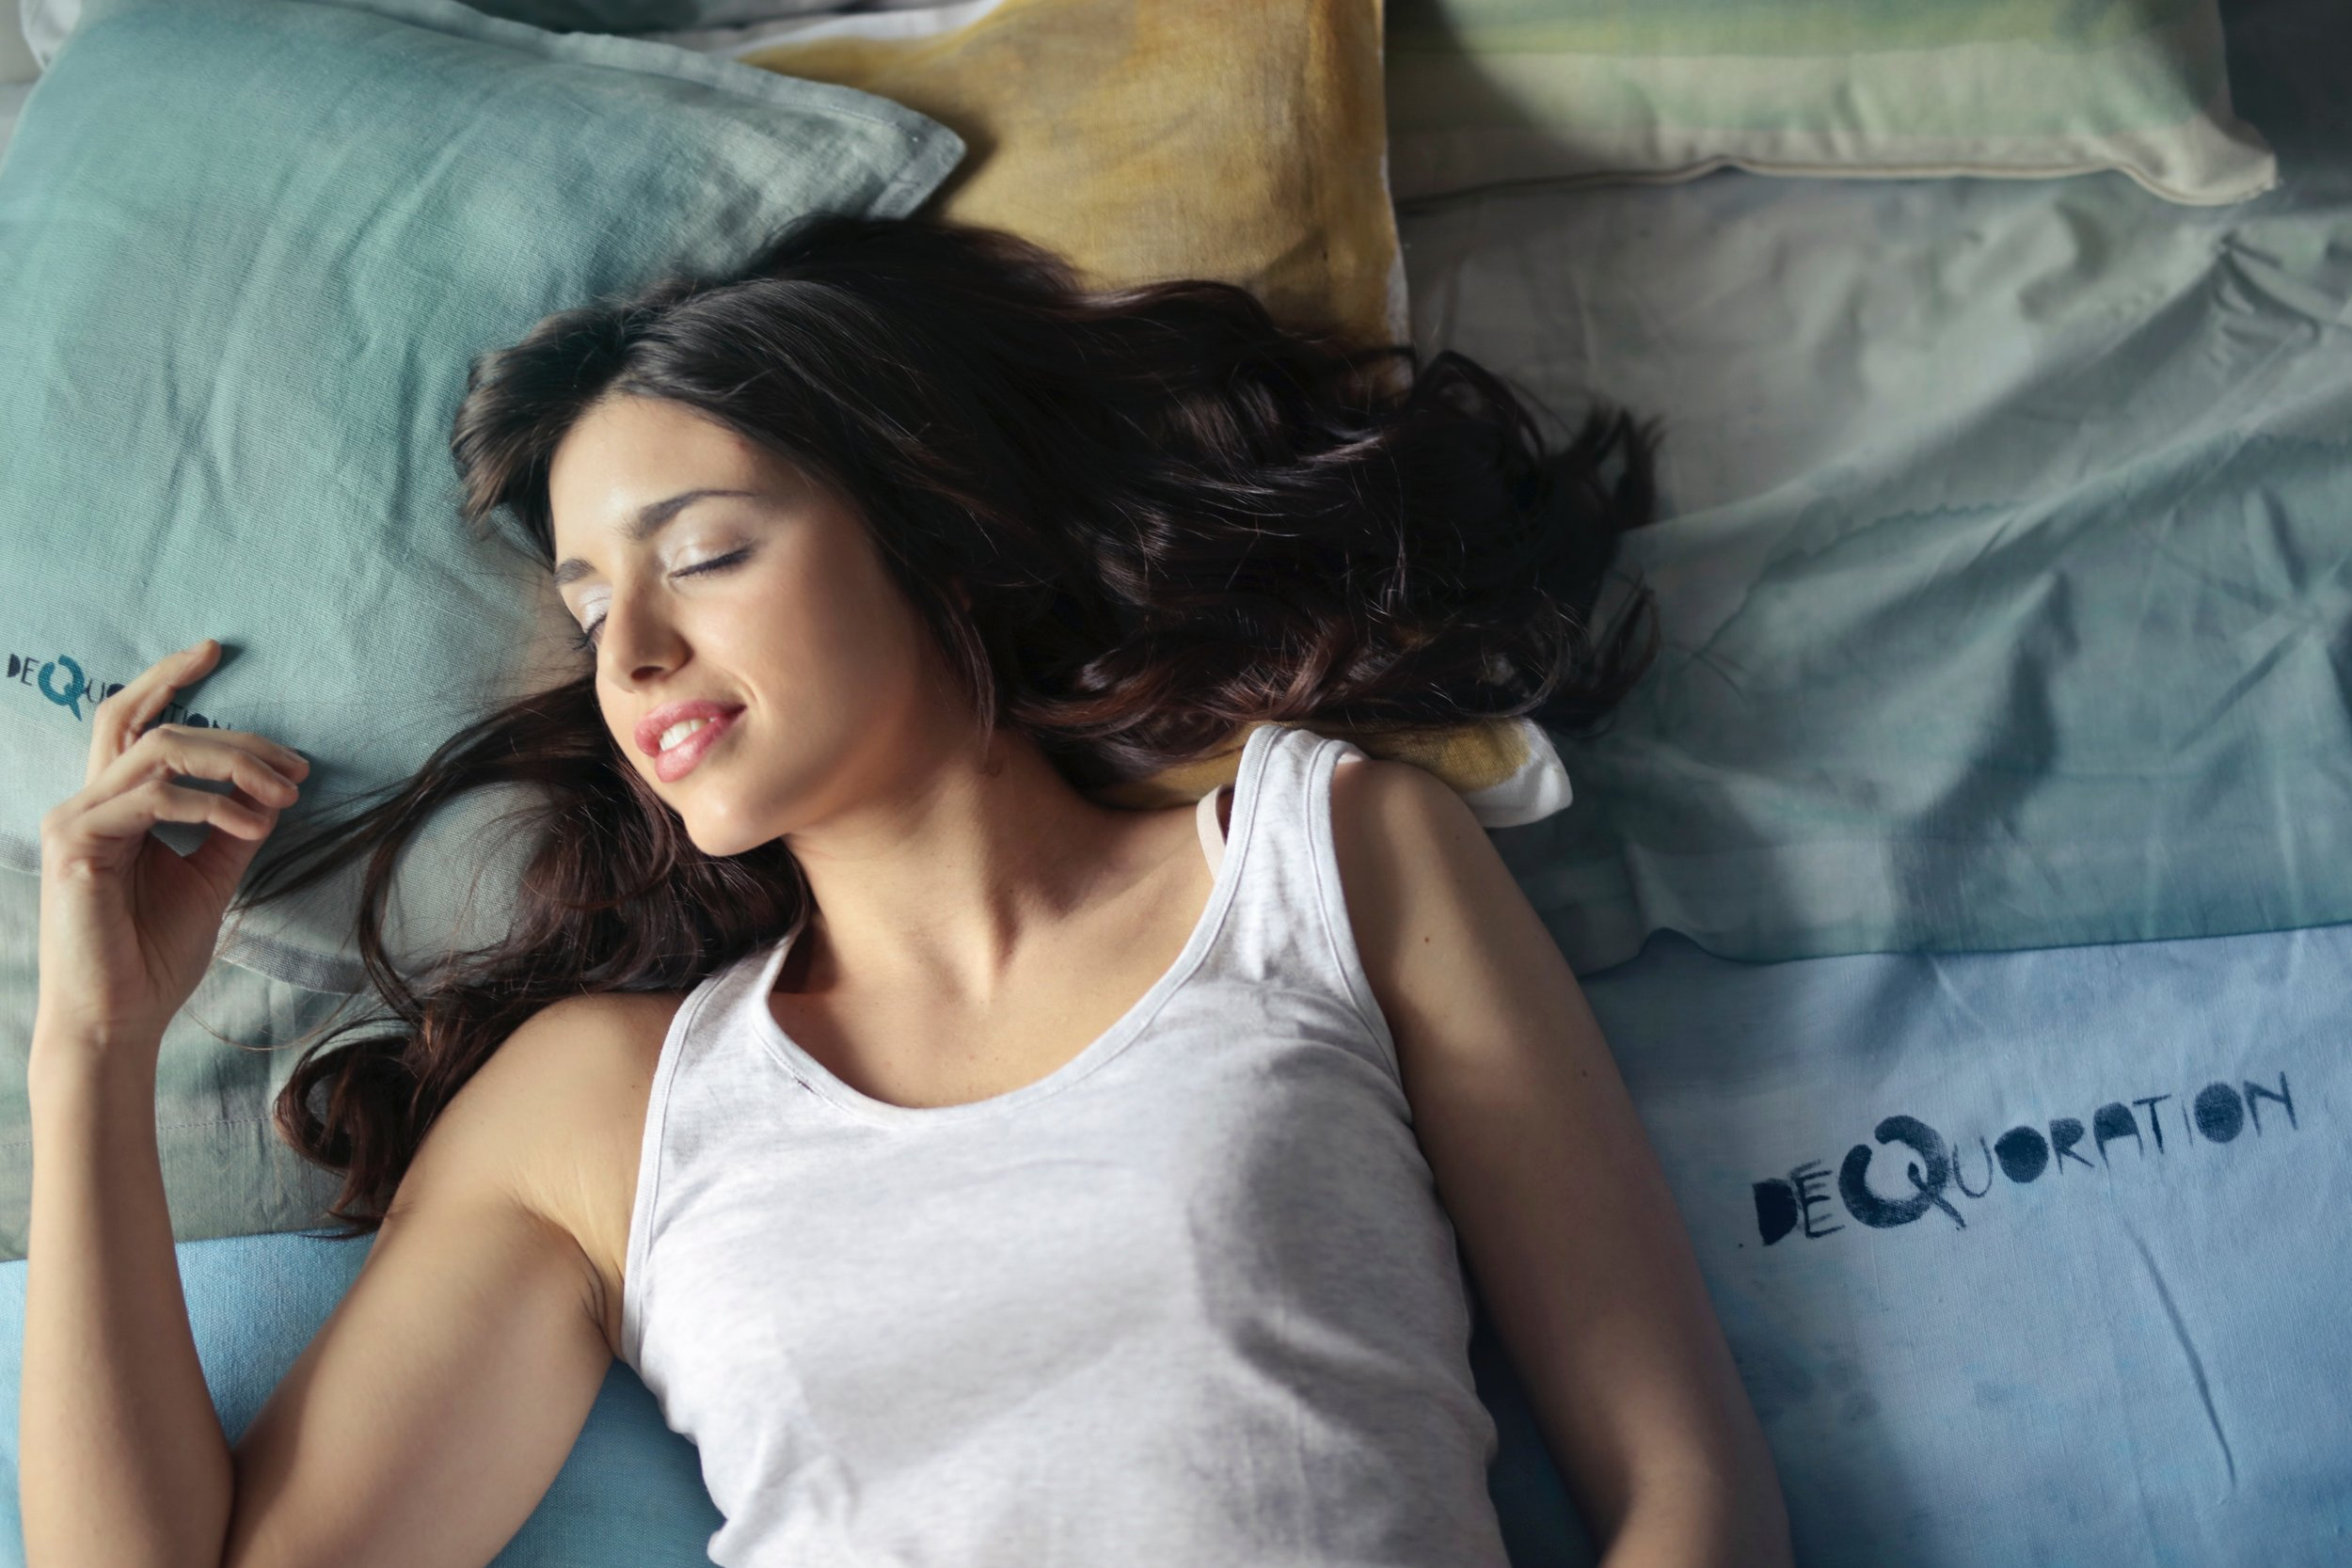 attractive white women sleeping with white tank top smiling in bed long black hair